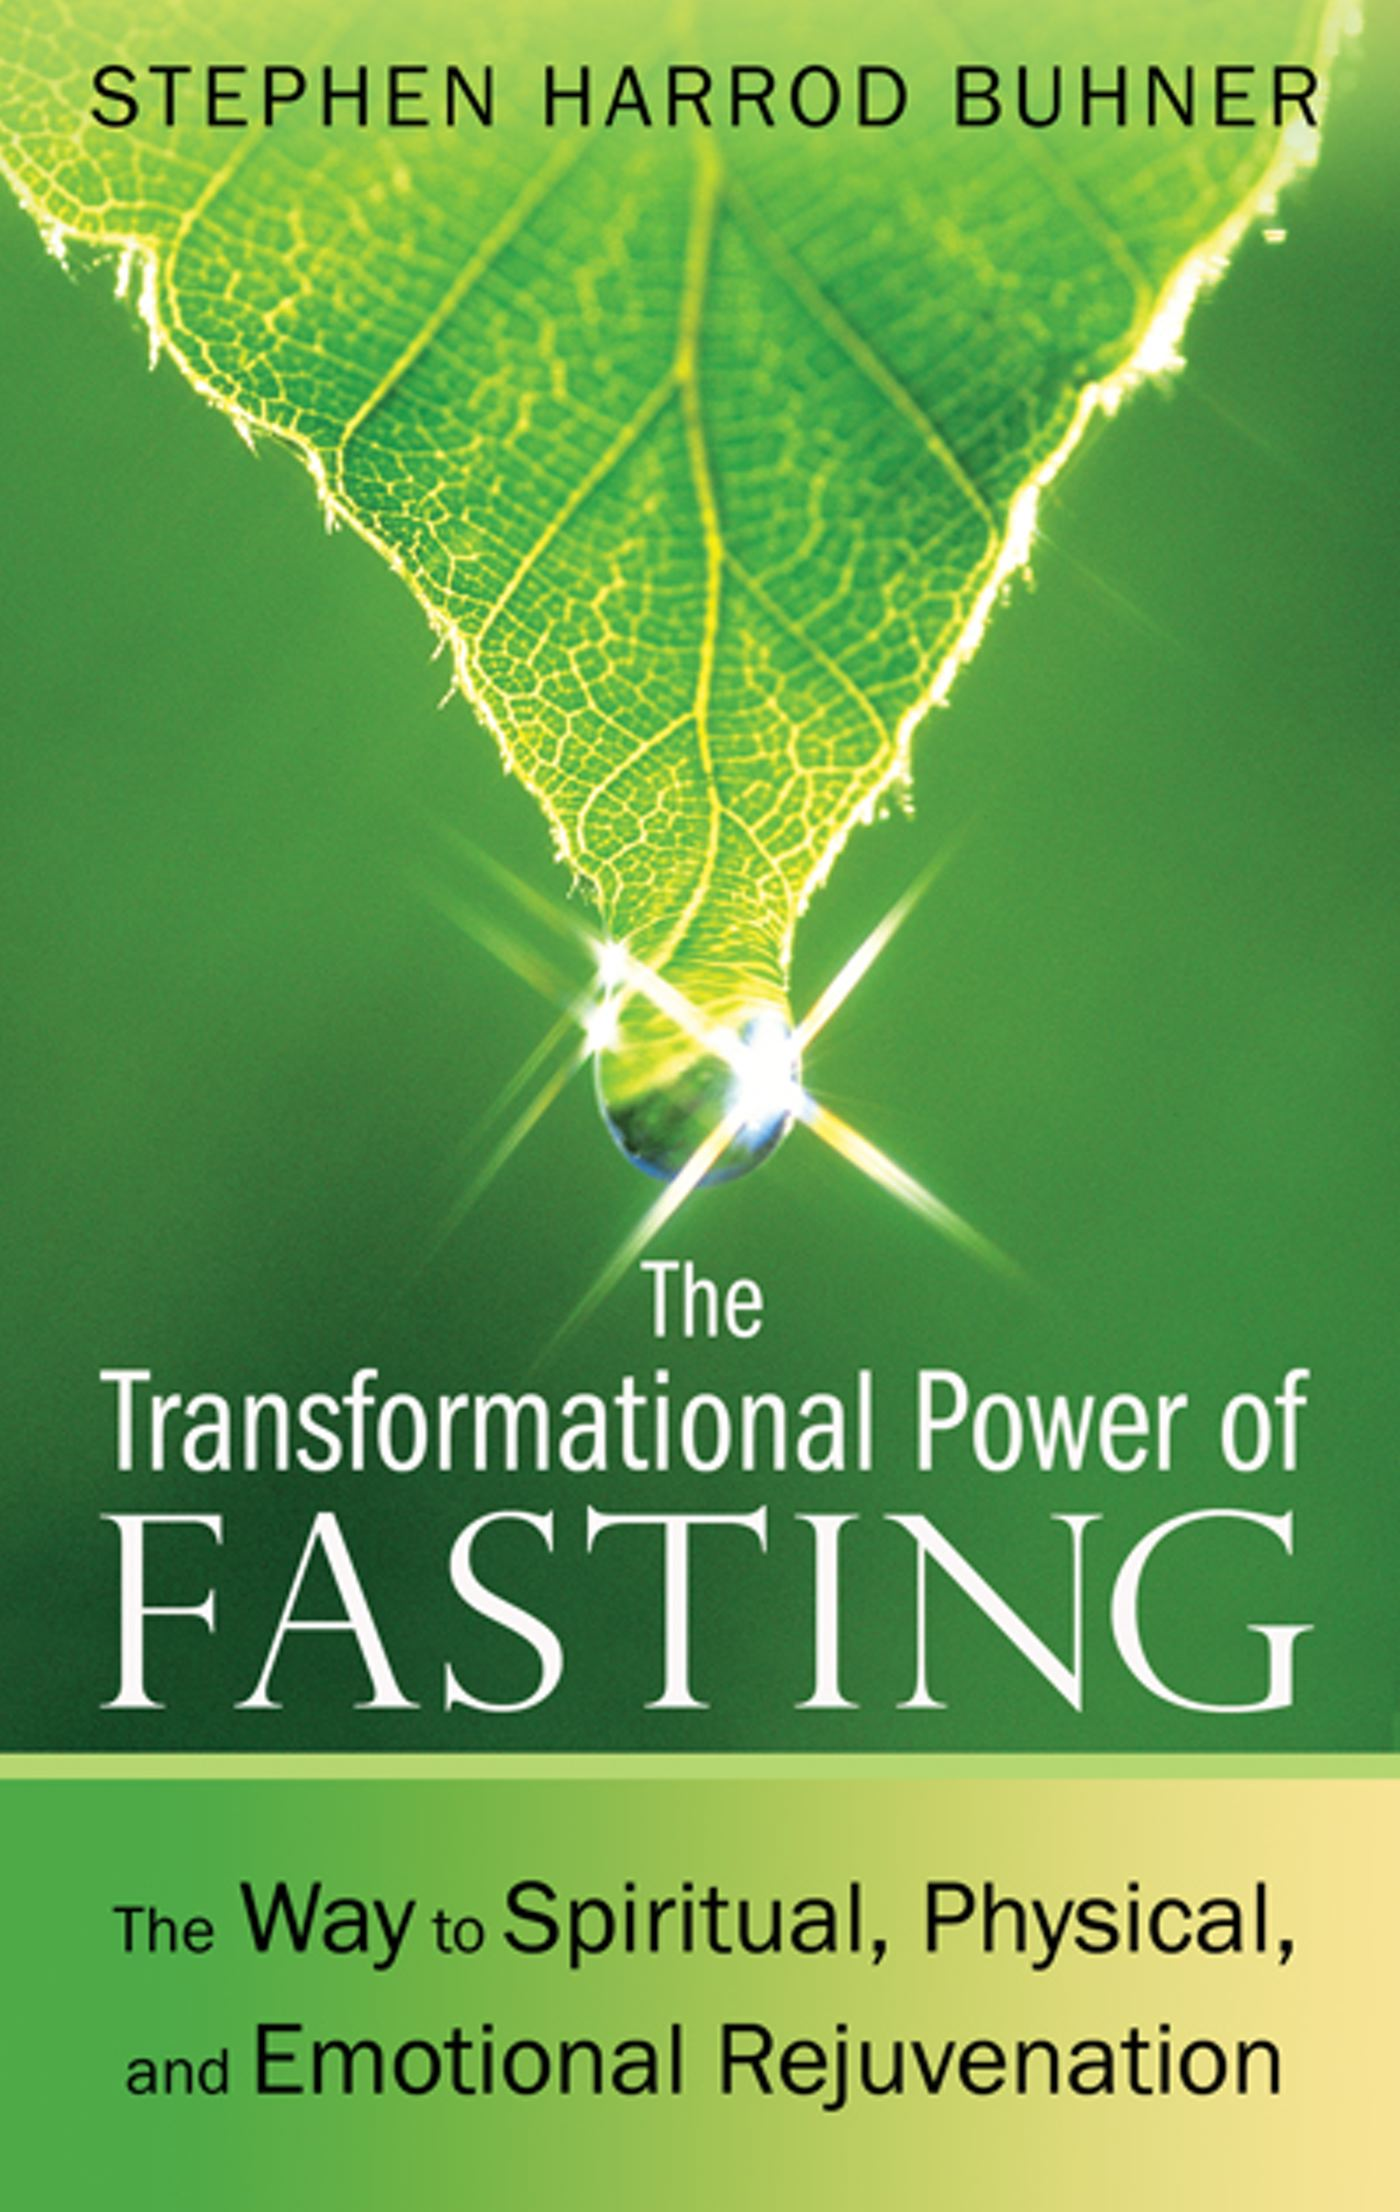 Image result for The Transformational Power of Fasting,